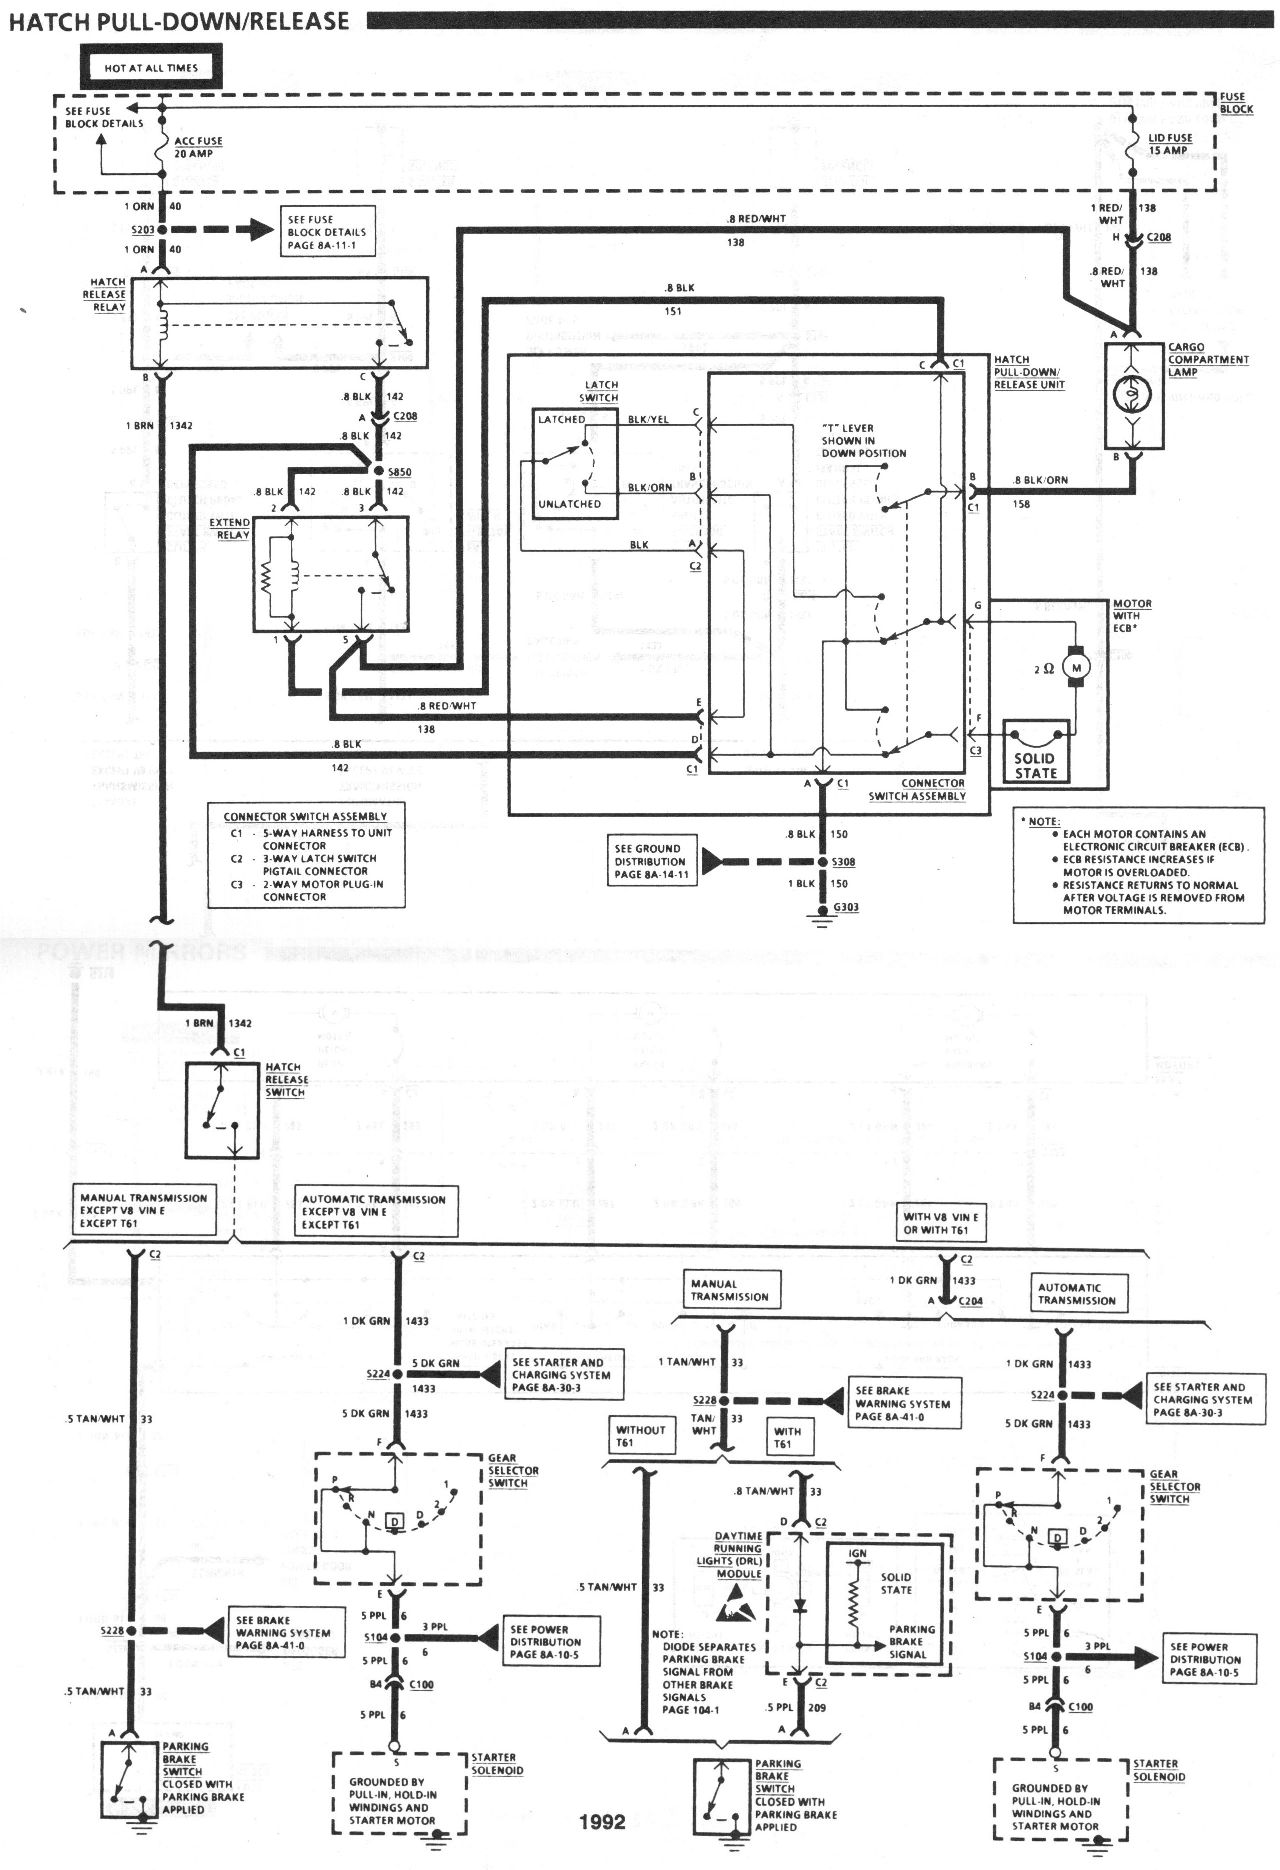 diagram_1992_hatch_pull_down_release trunk latch help??? (91 camaro) third generation f body message 1989 pontiac firebird ecm wiring diagram at edmiracle.co